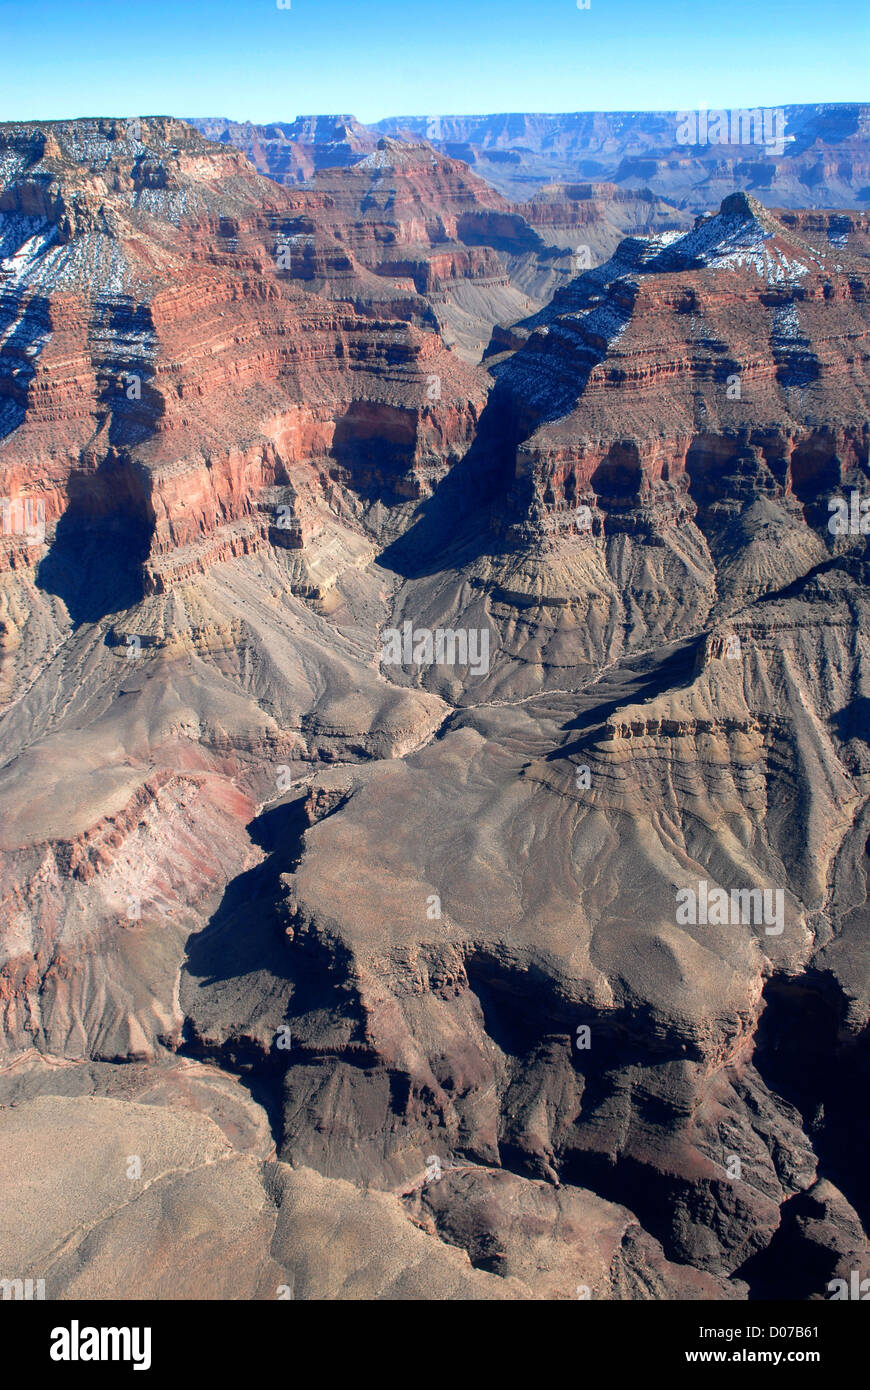 The Grand Canyon seen from a helicopter - Stock Image